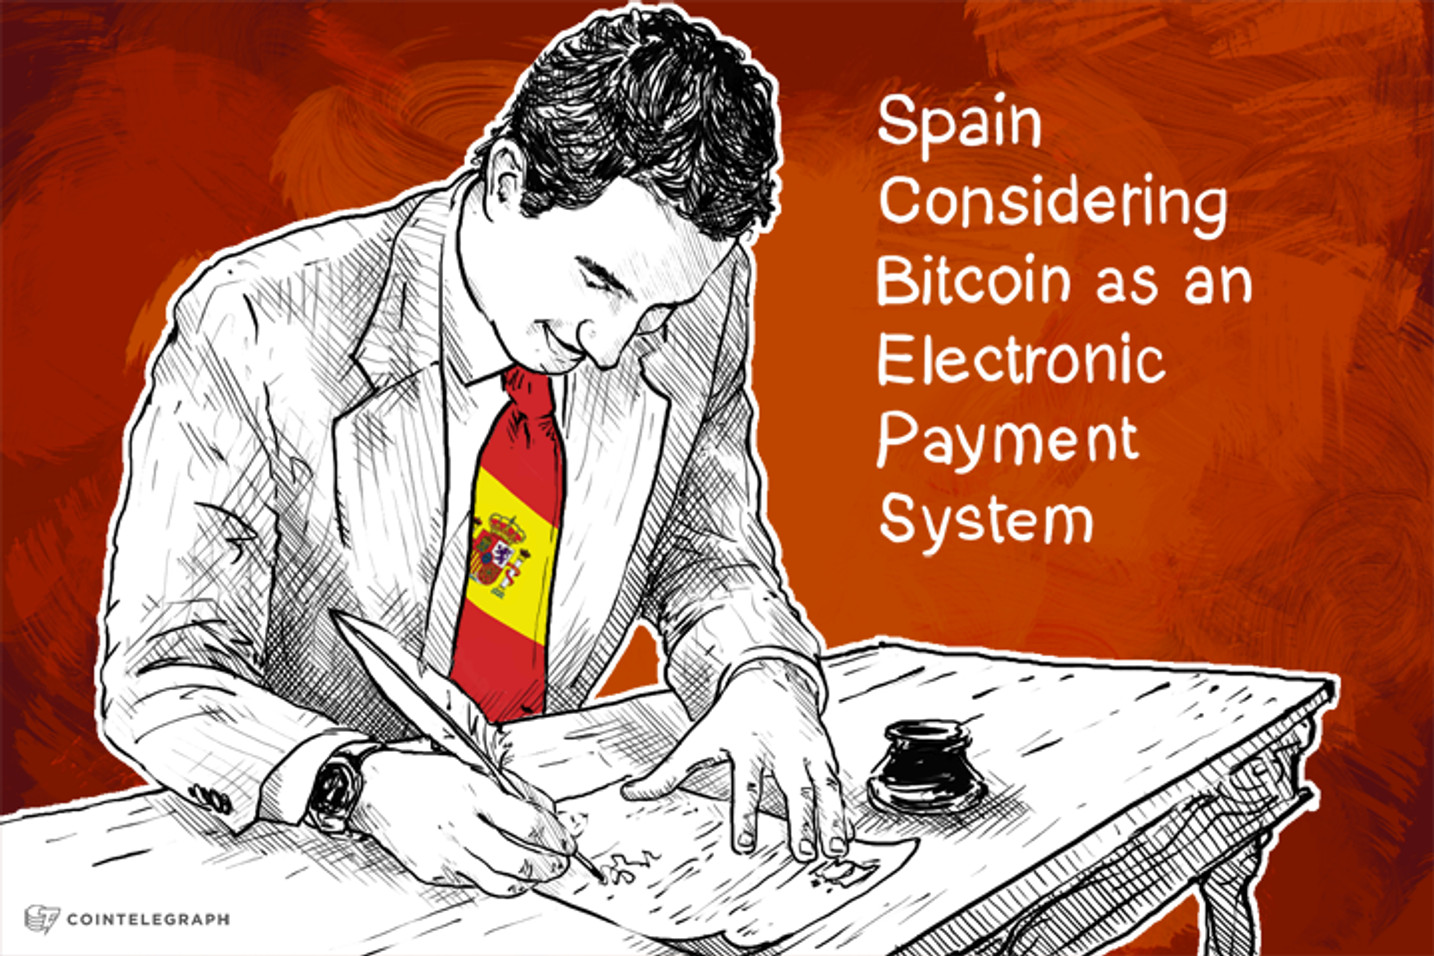 Spain Considering Bitcoin as an Electronic Payment System